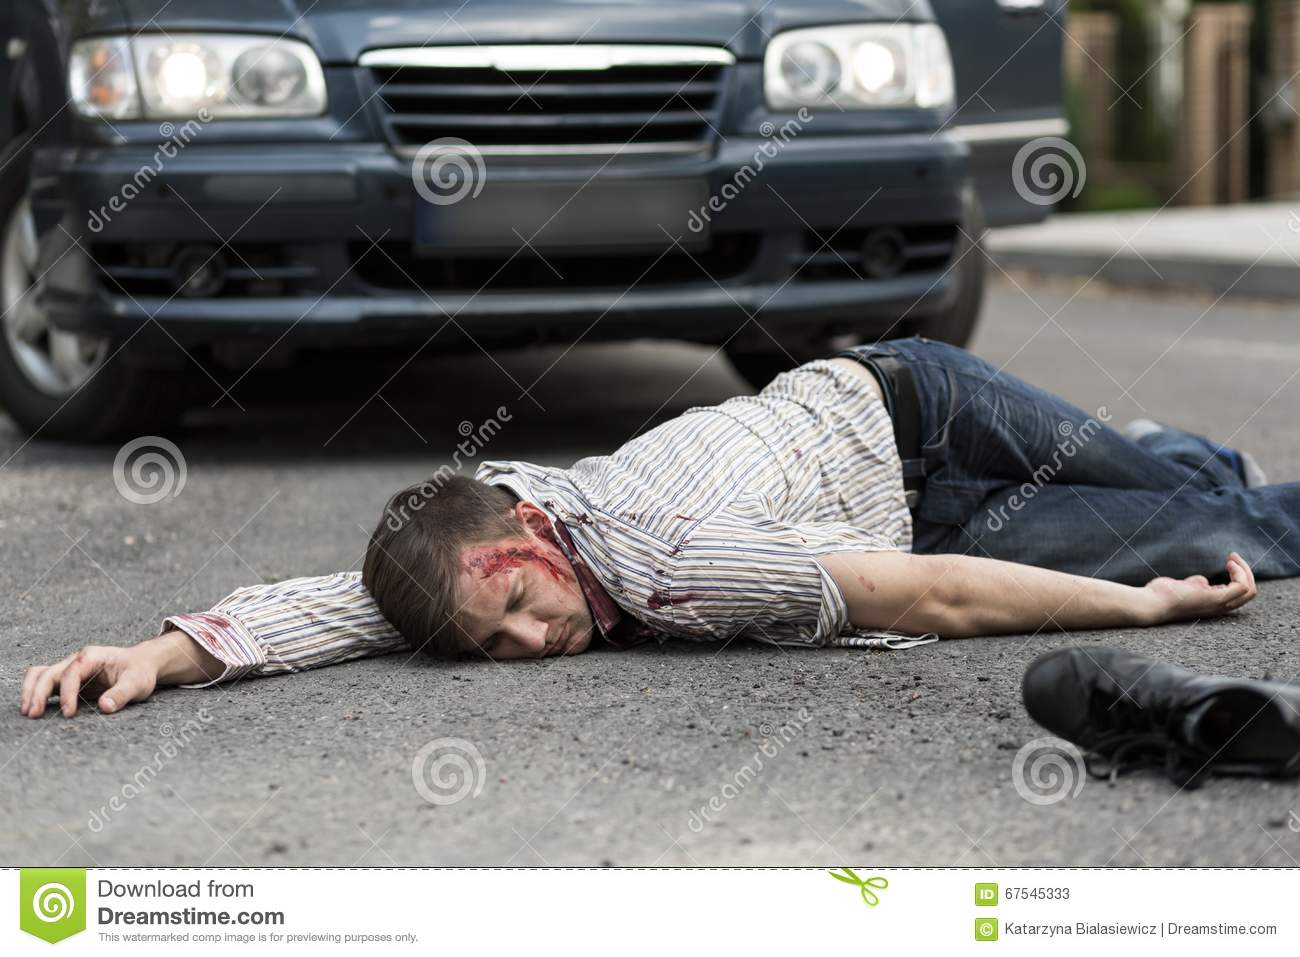 Man On A Bicycle Gets Hit By A Car